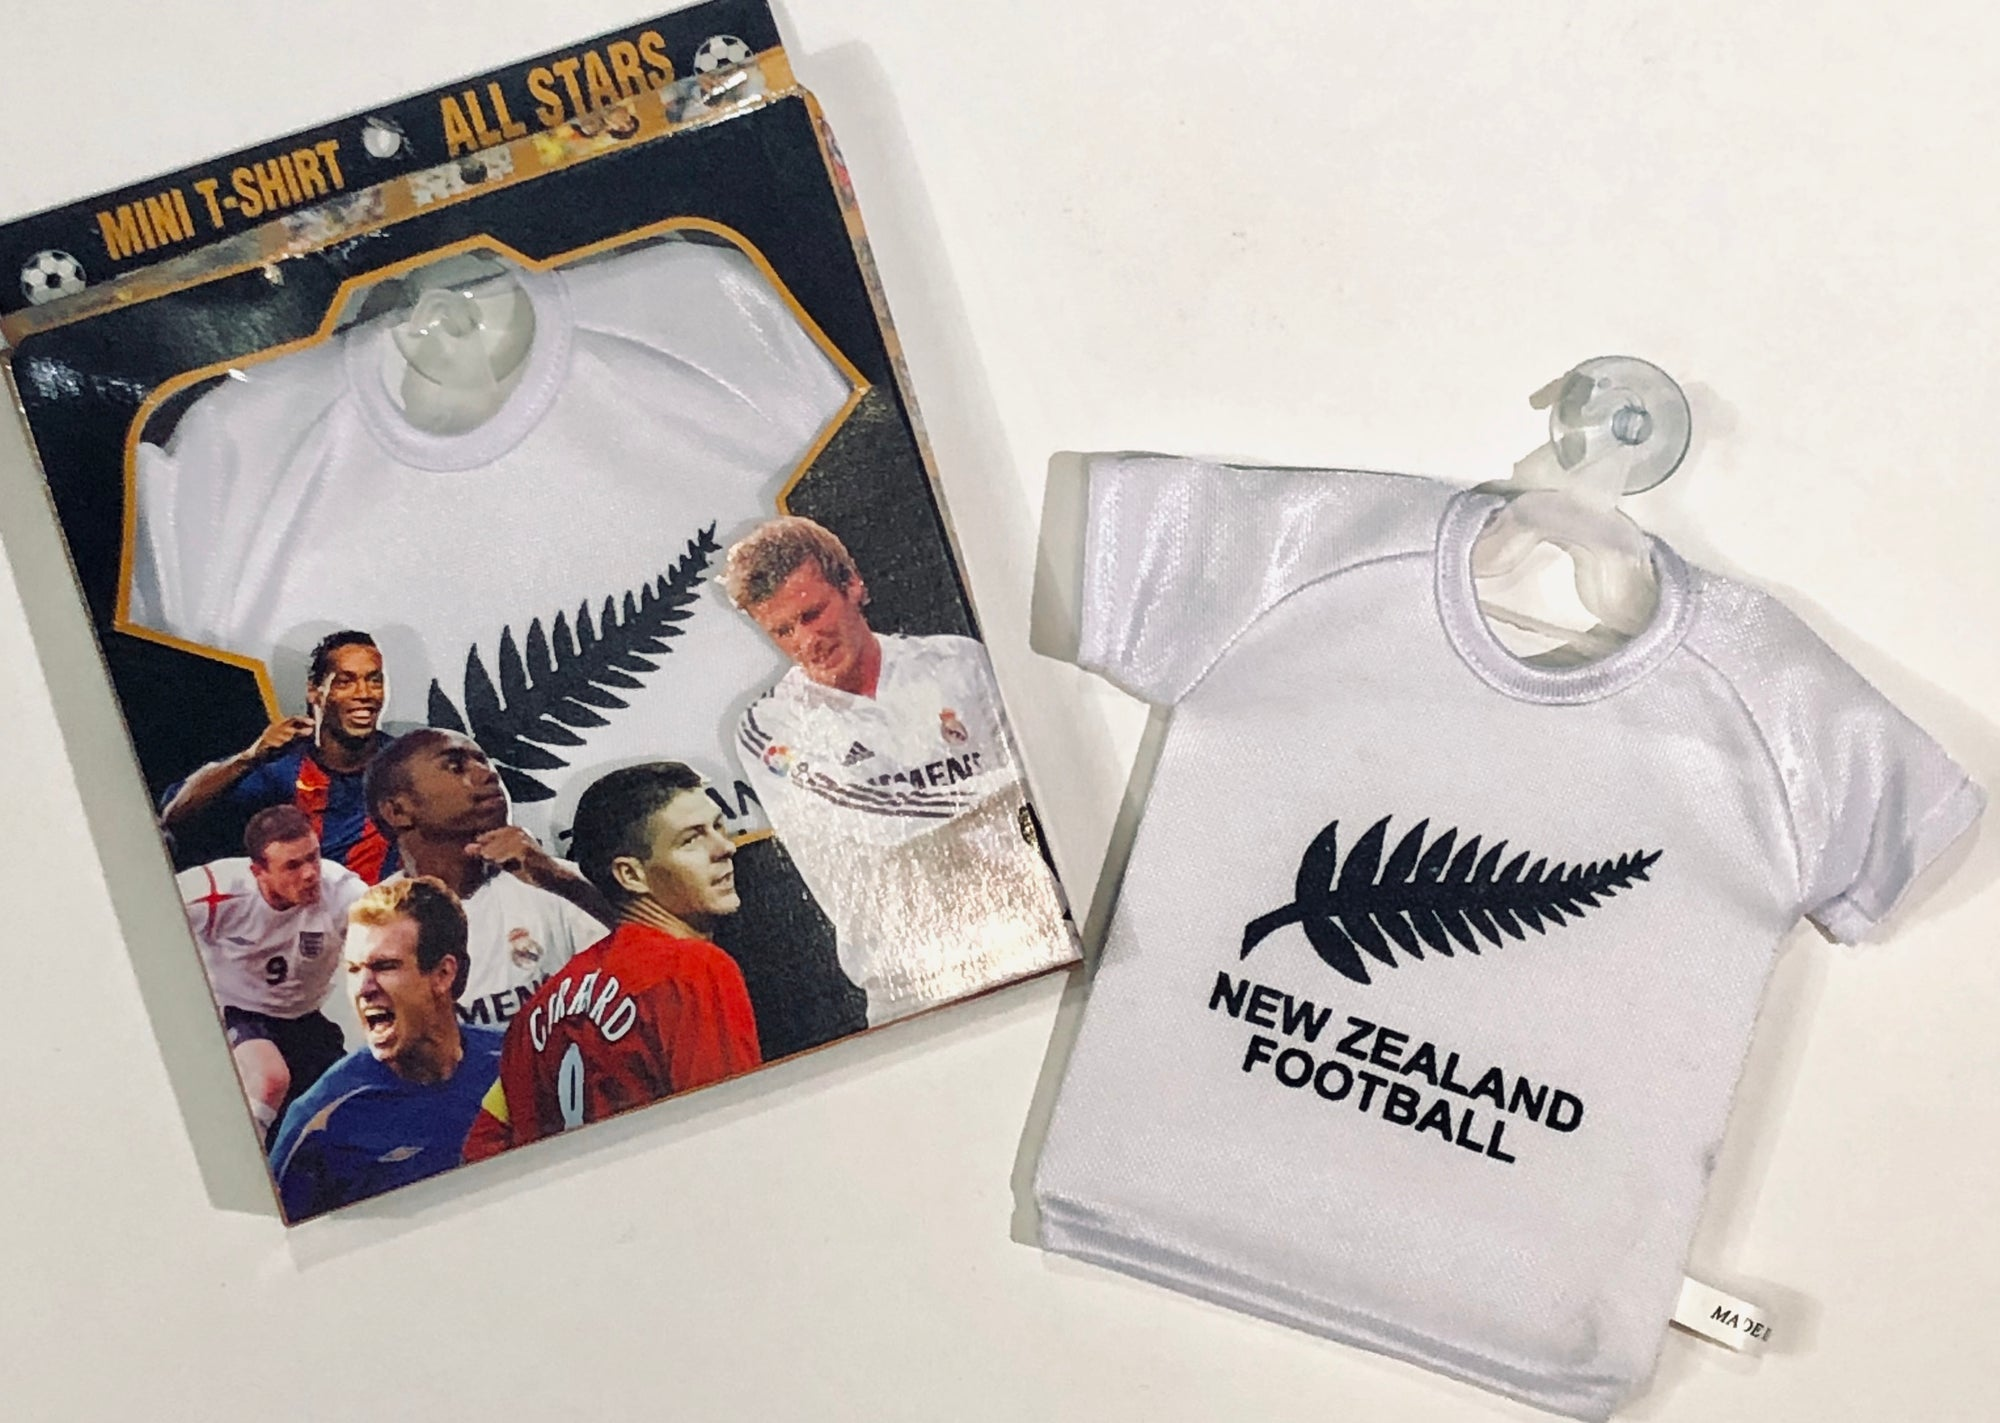 New Zealand Mini Shirt